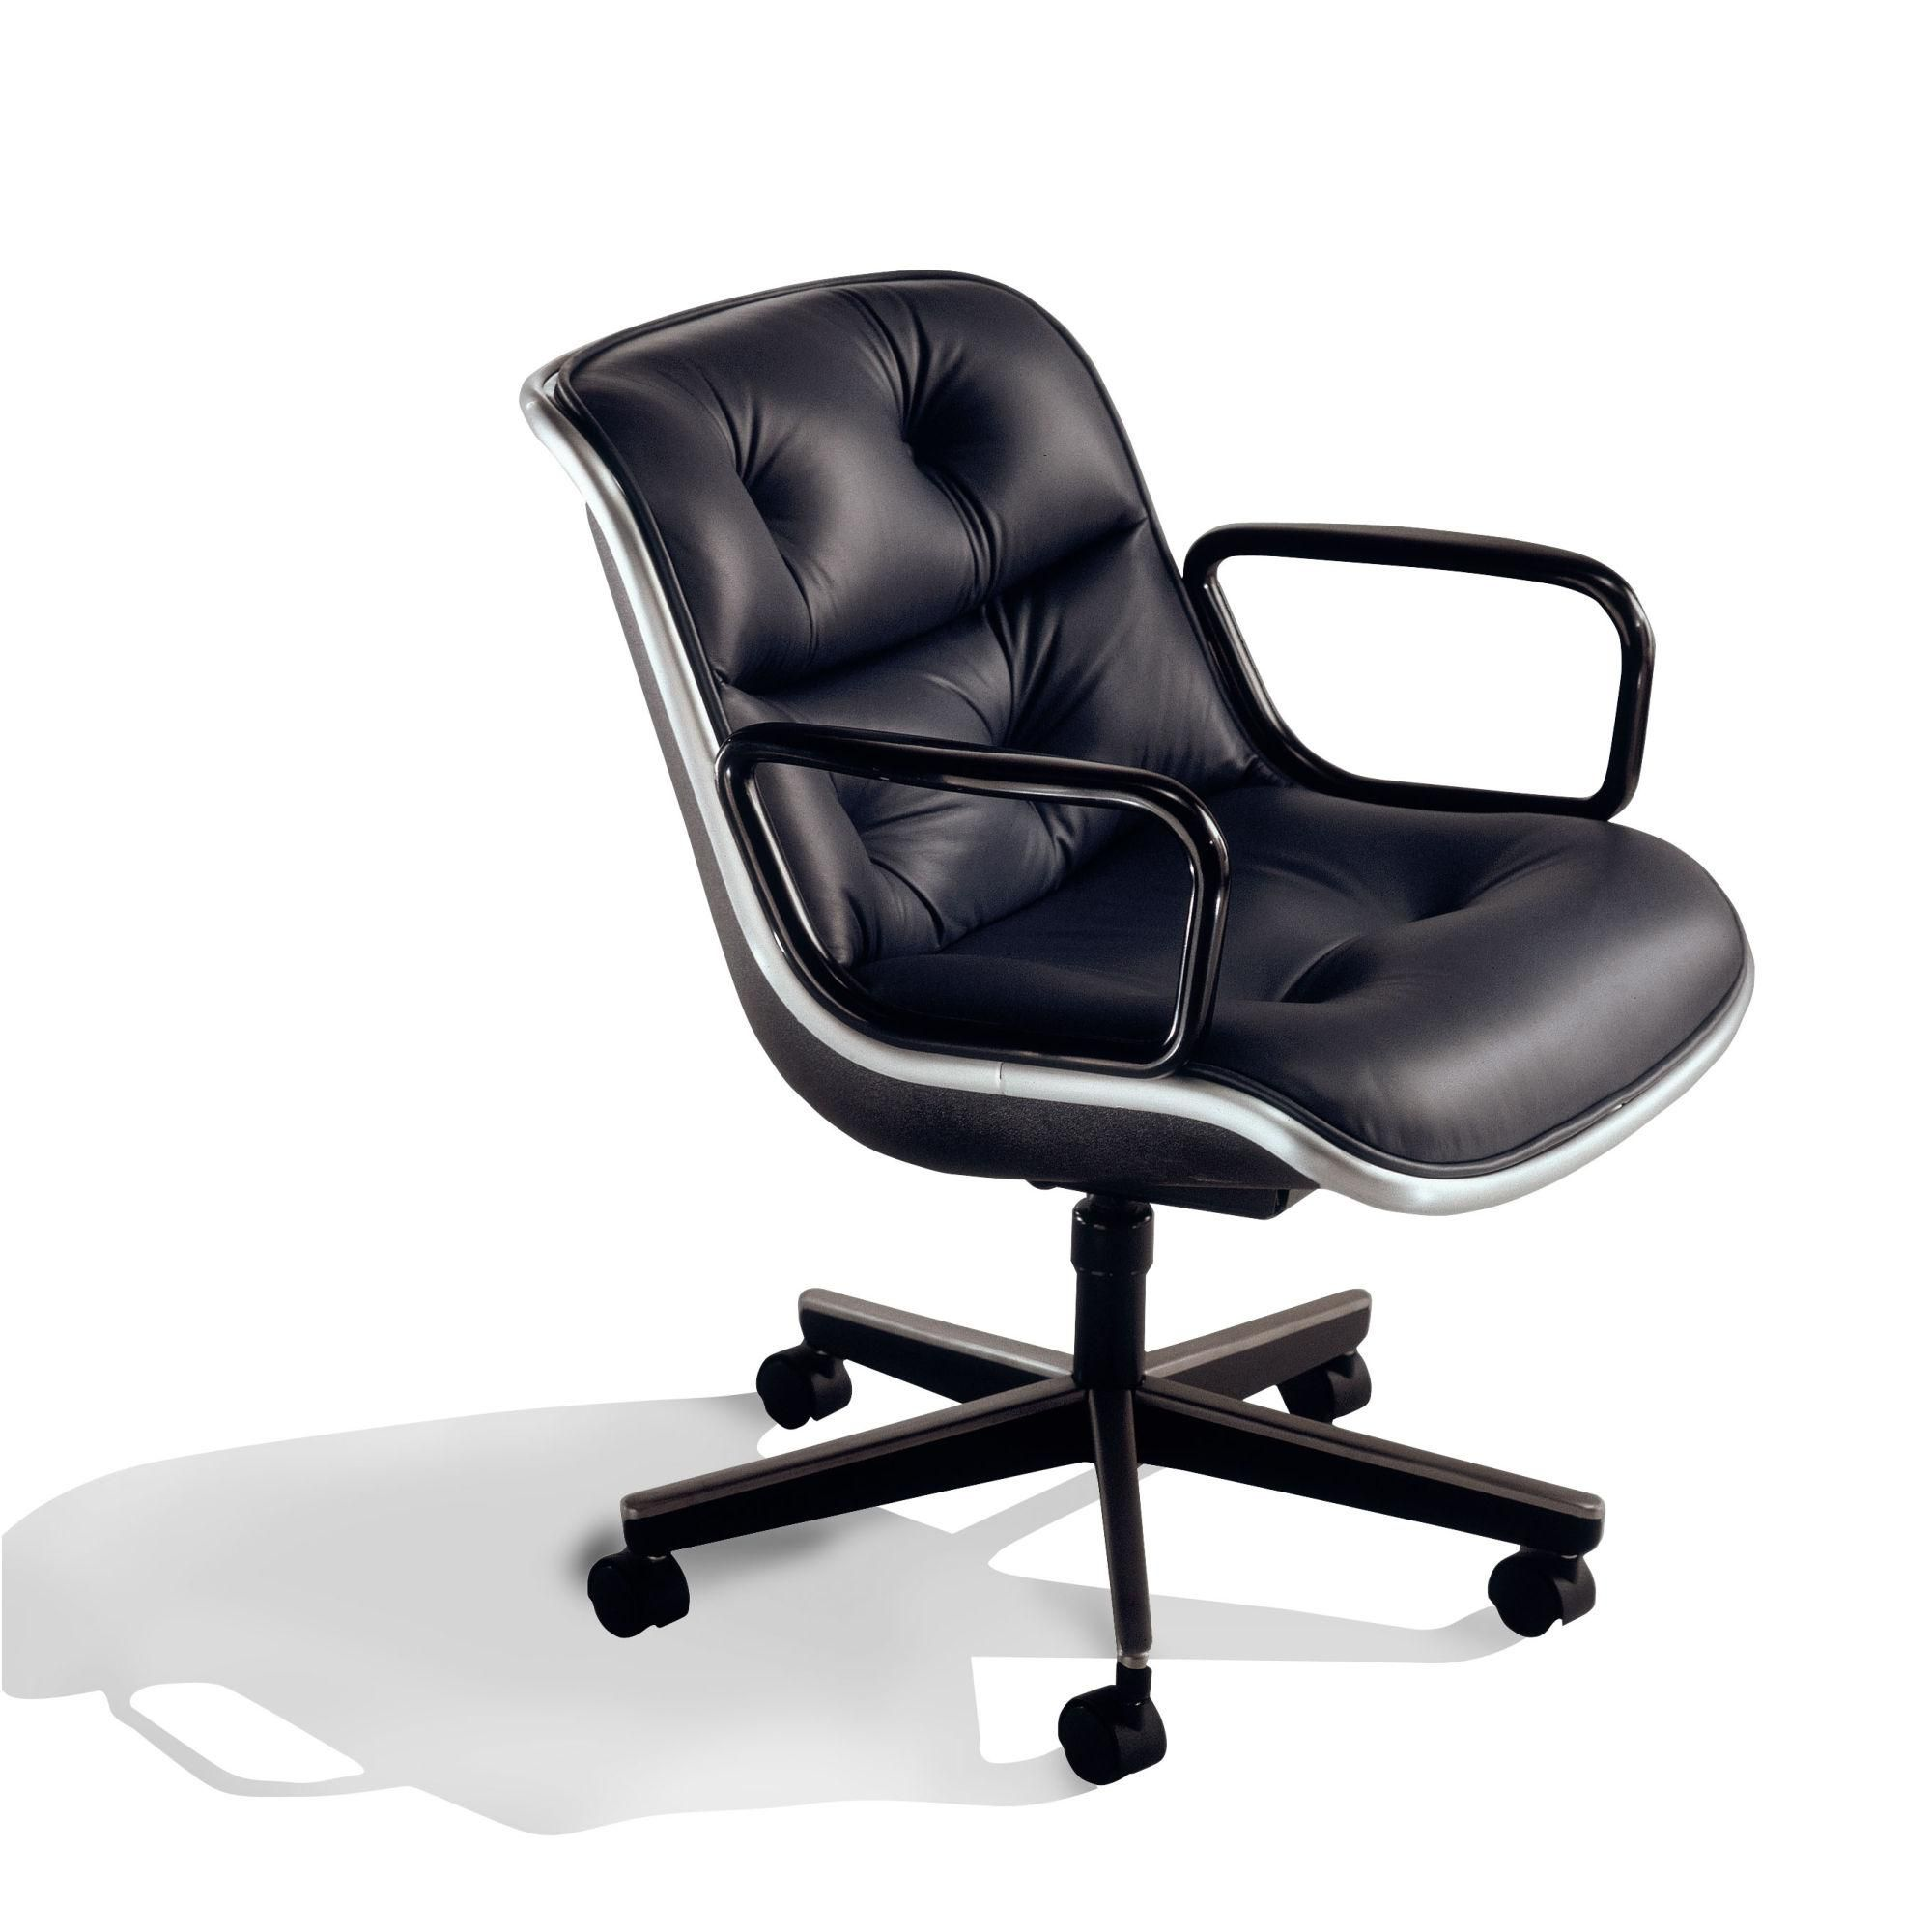 pinterest arms chairs partners search knoll chair arm google pin and